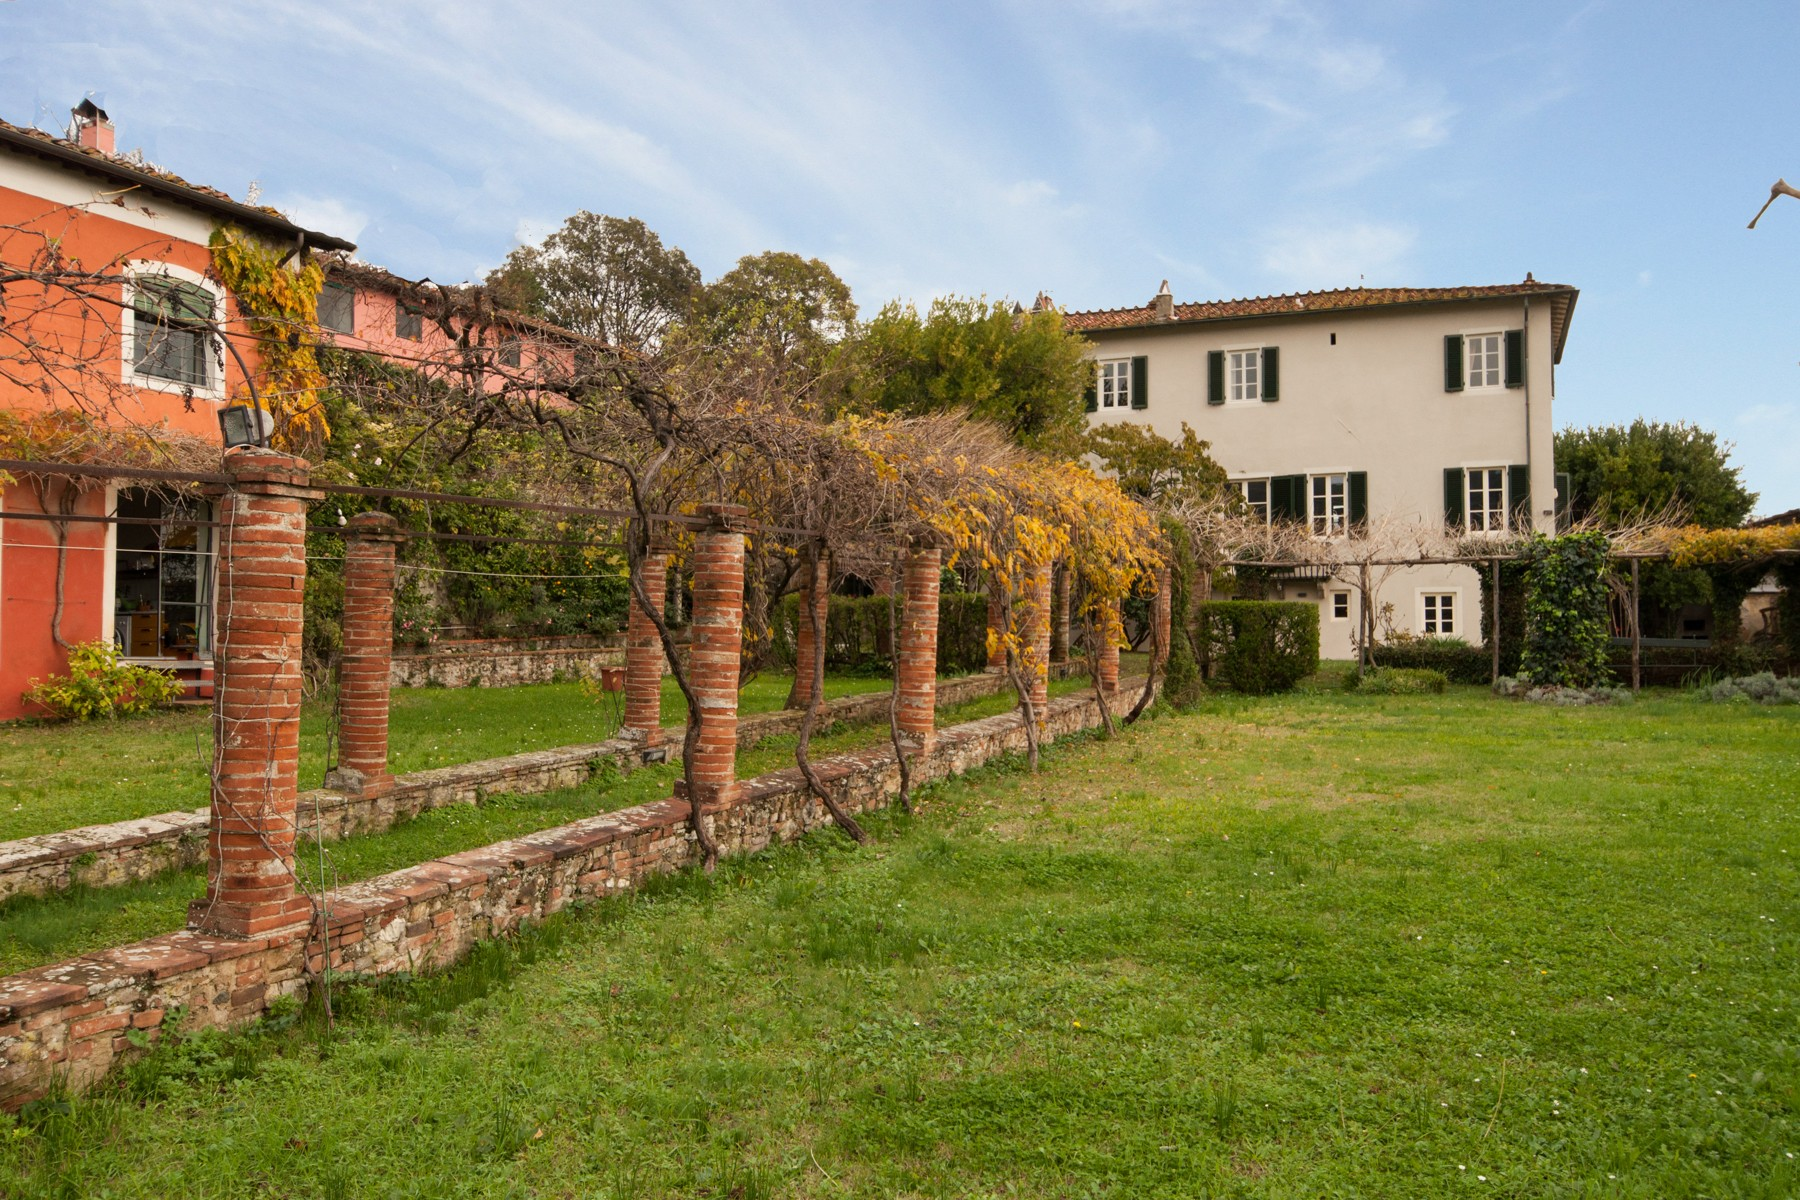 Single Family Home for Sale at Enchanting property in Lucca countryside San Lorenzo di Moriano Lucca, 55100 Italy